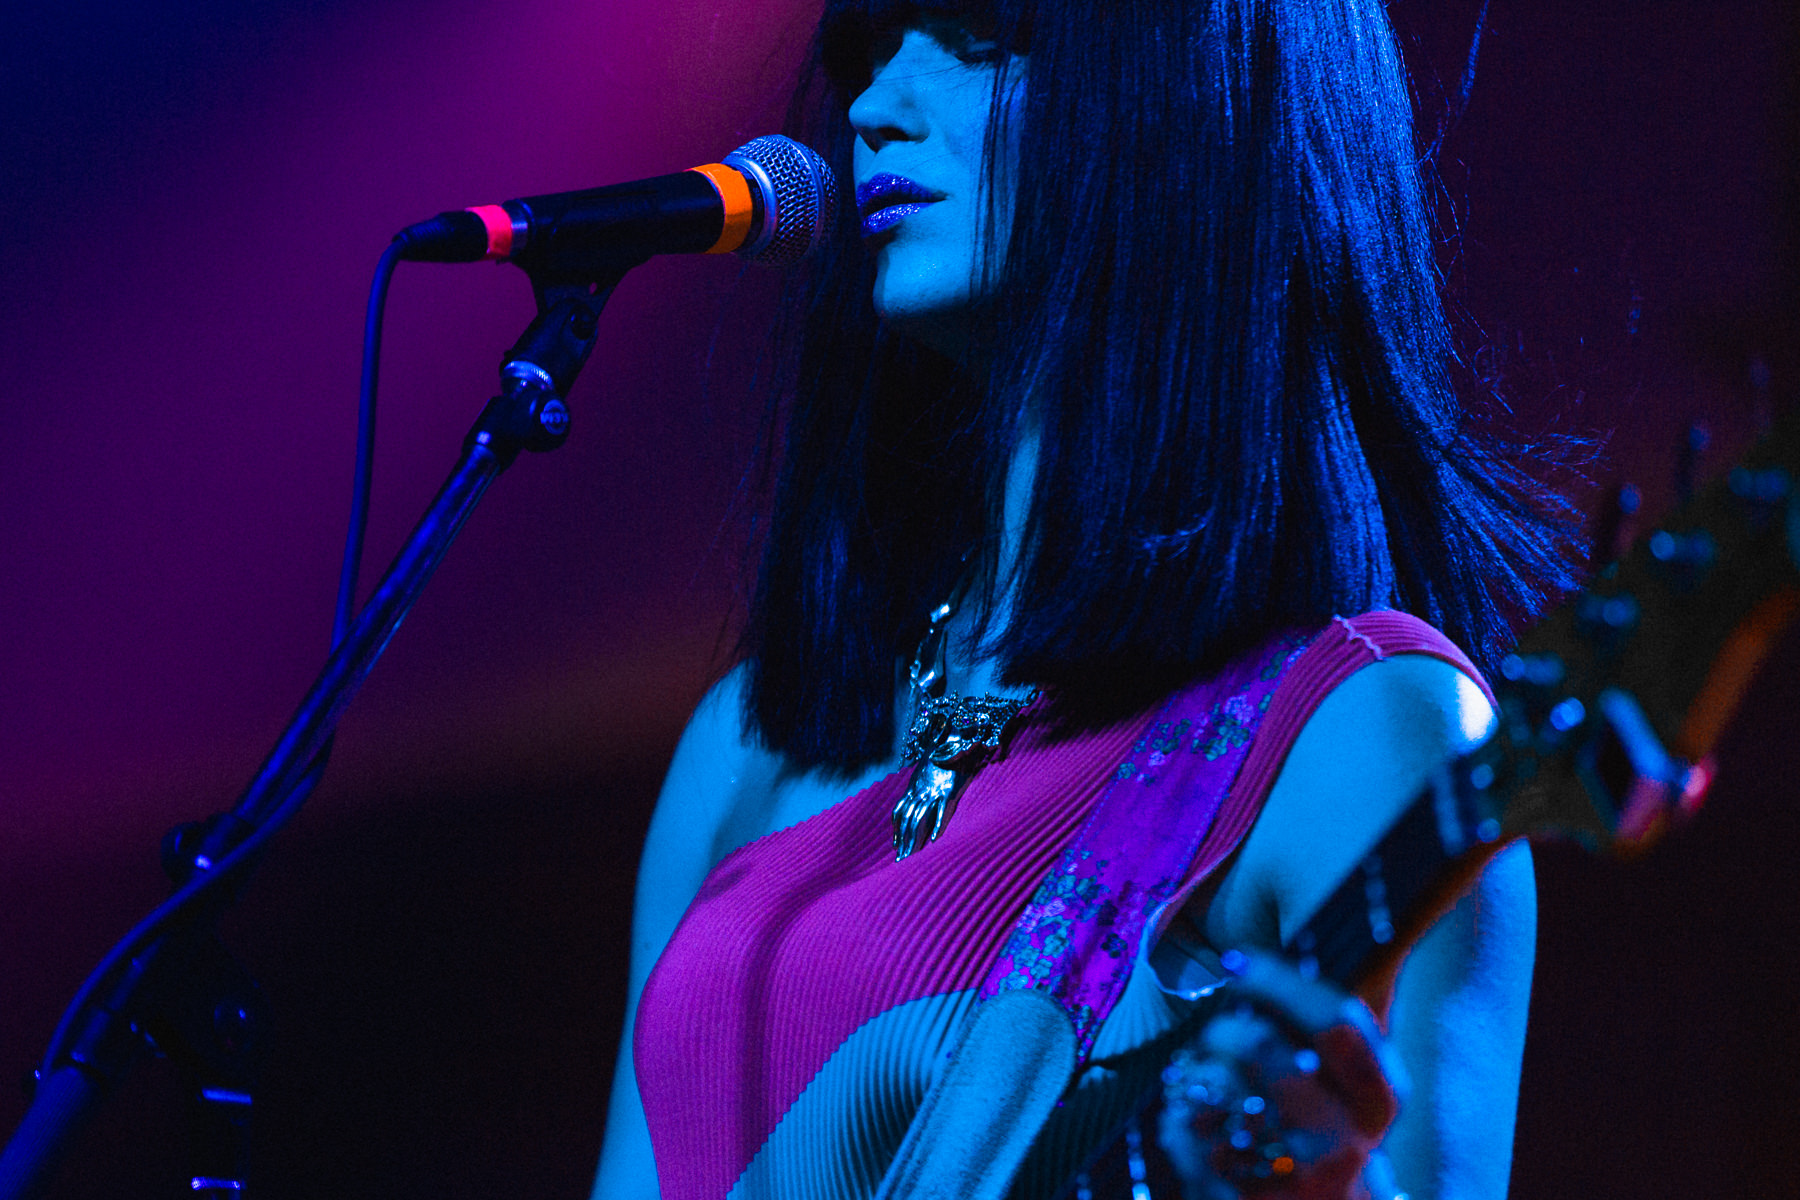 180326-kirby-gladstein-photograpy-khruangbin-concert-lodge-room-los-angeles-3111.jpg